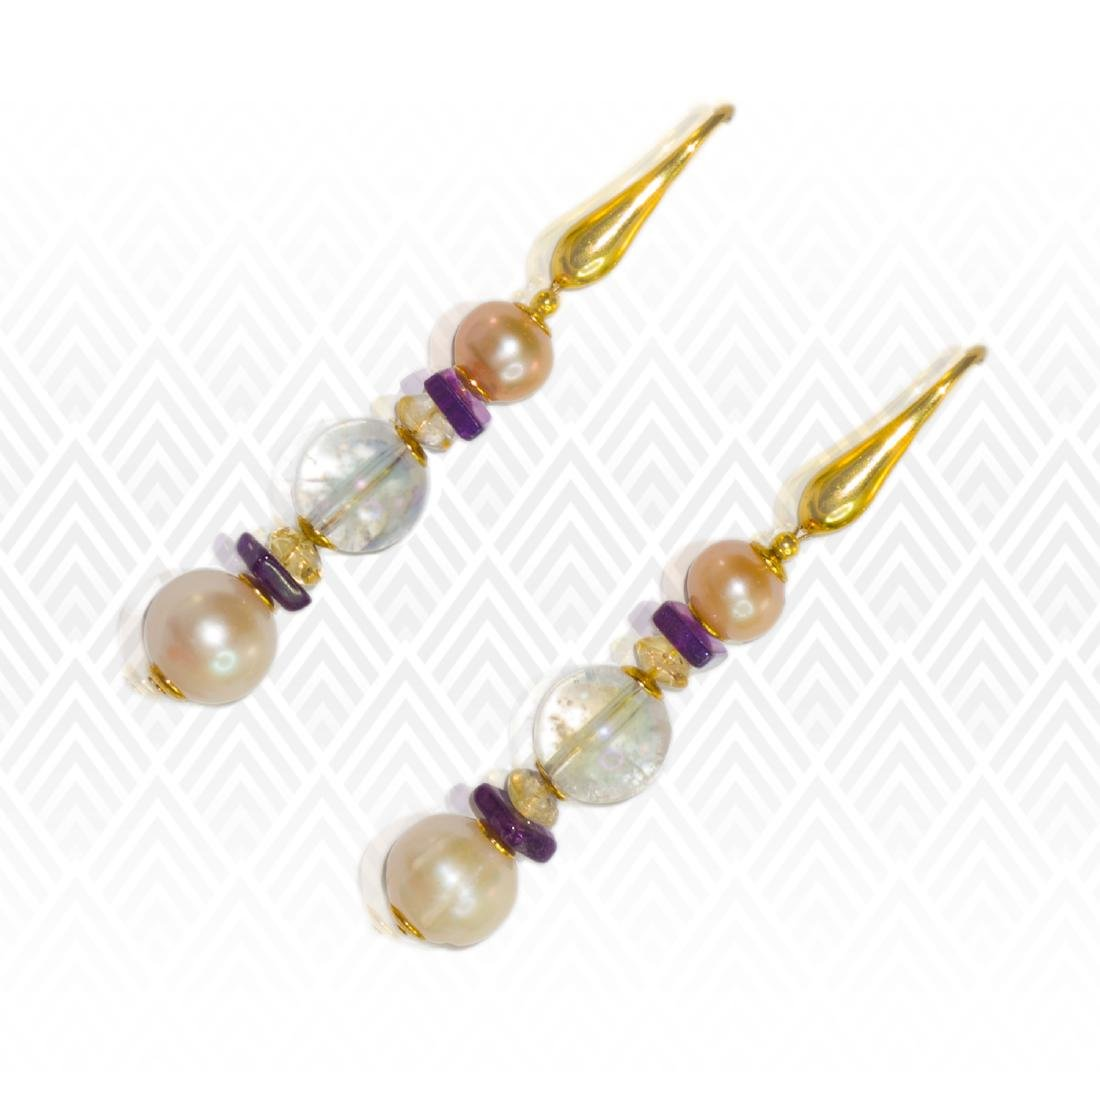 Sea Treasure' Pearl and Mystic topaz Earrings - 4